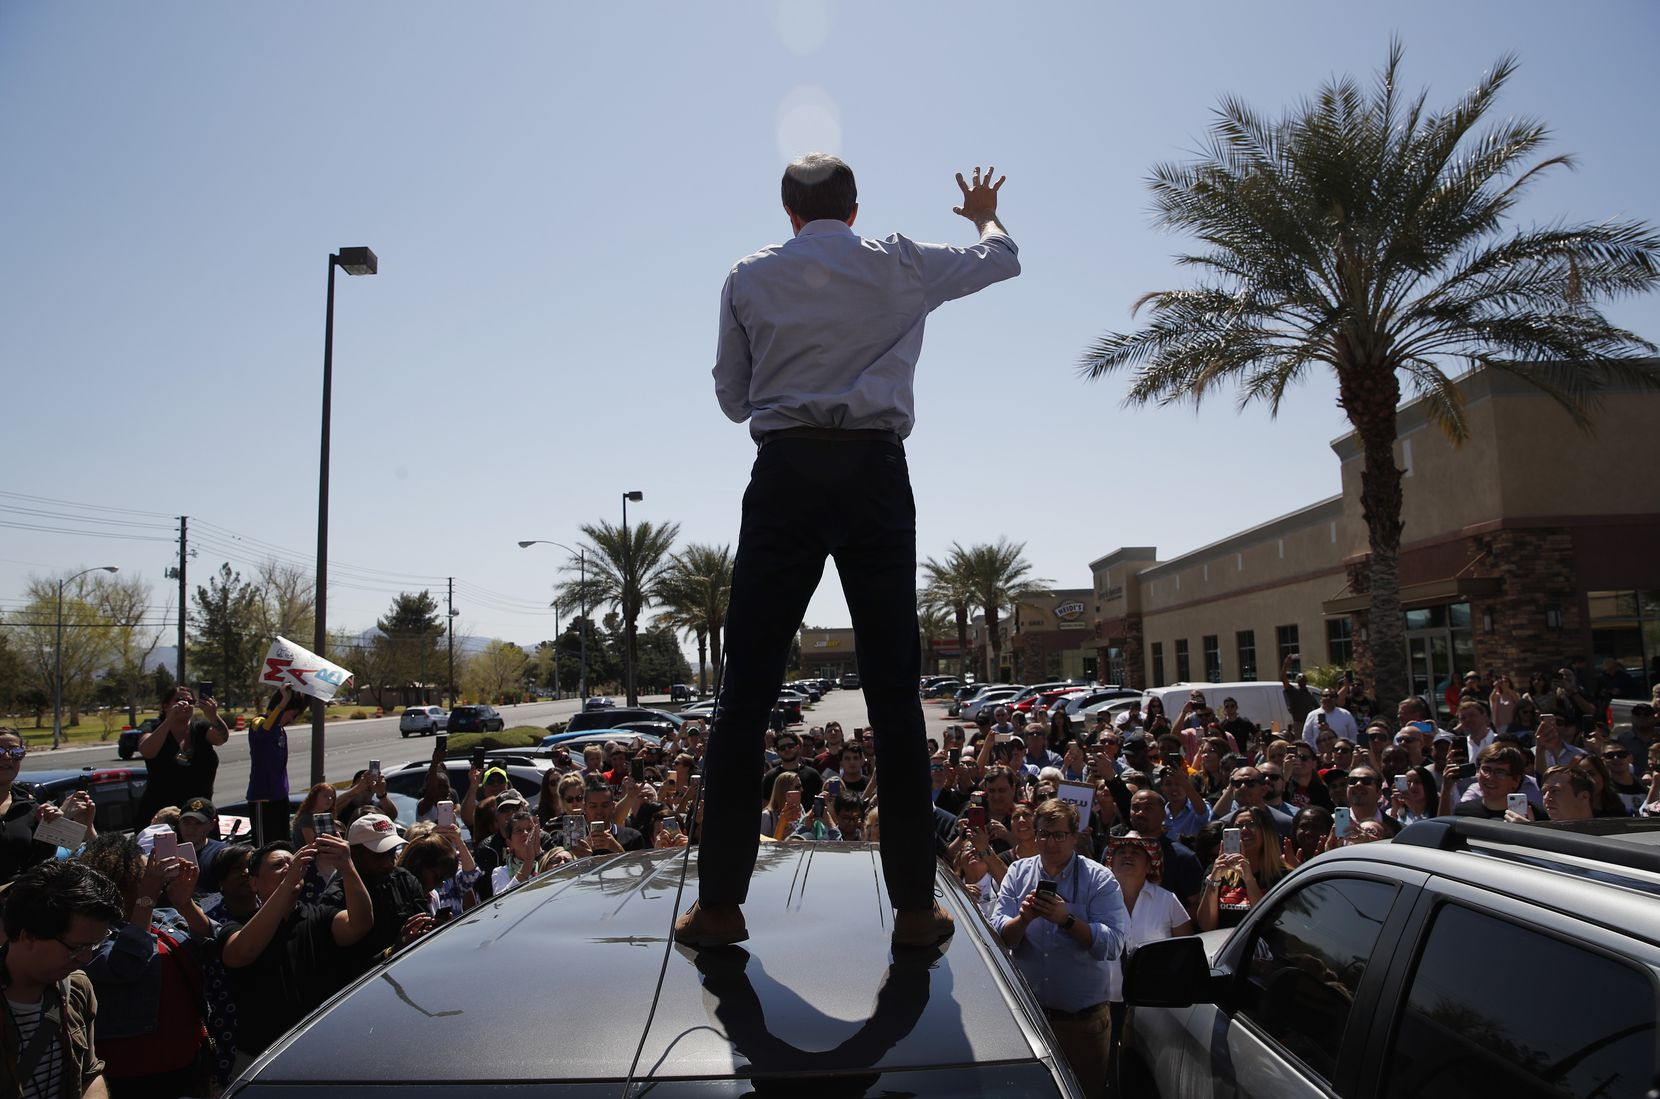 Democratic presidential candidate and former Texas congressman Beto O'Rourke speaks from the roof of his car to an overflow crowd at a campaign stop at a coffee shop Sunday, March 24, 2019, in Las Vegas.